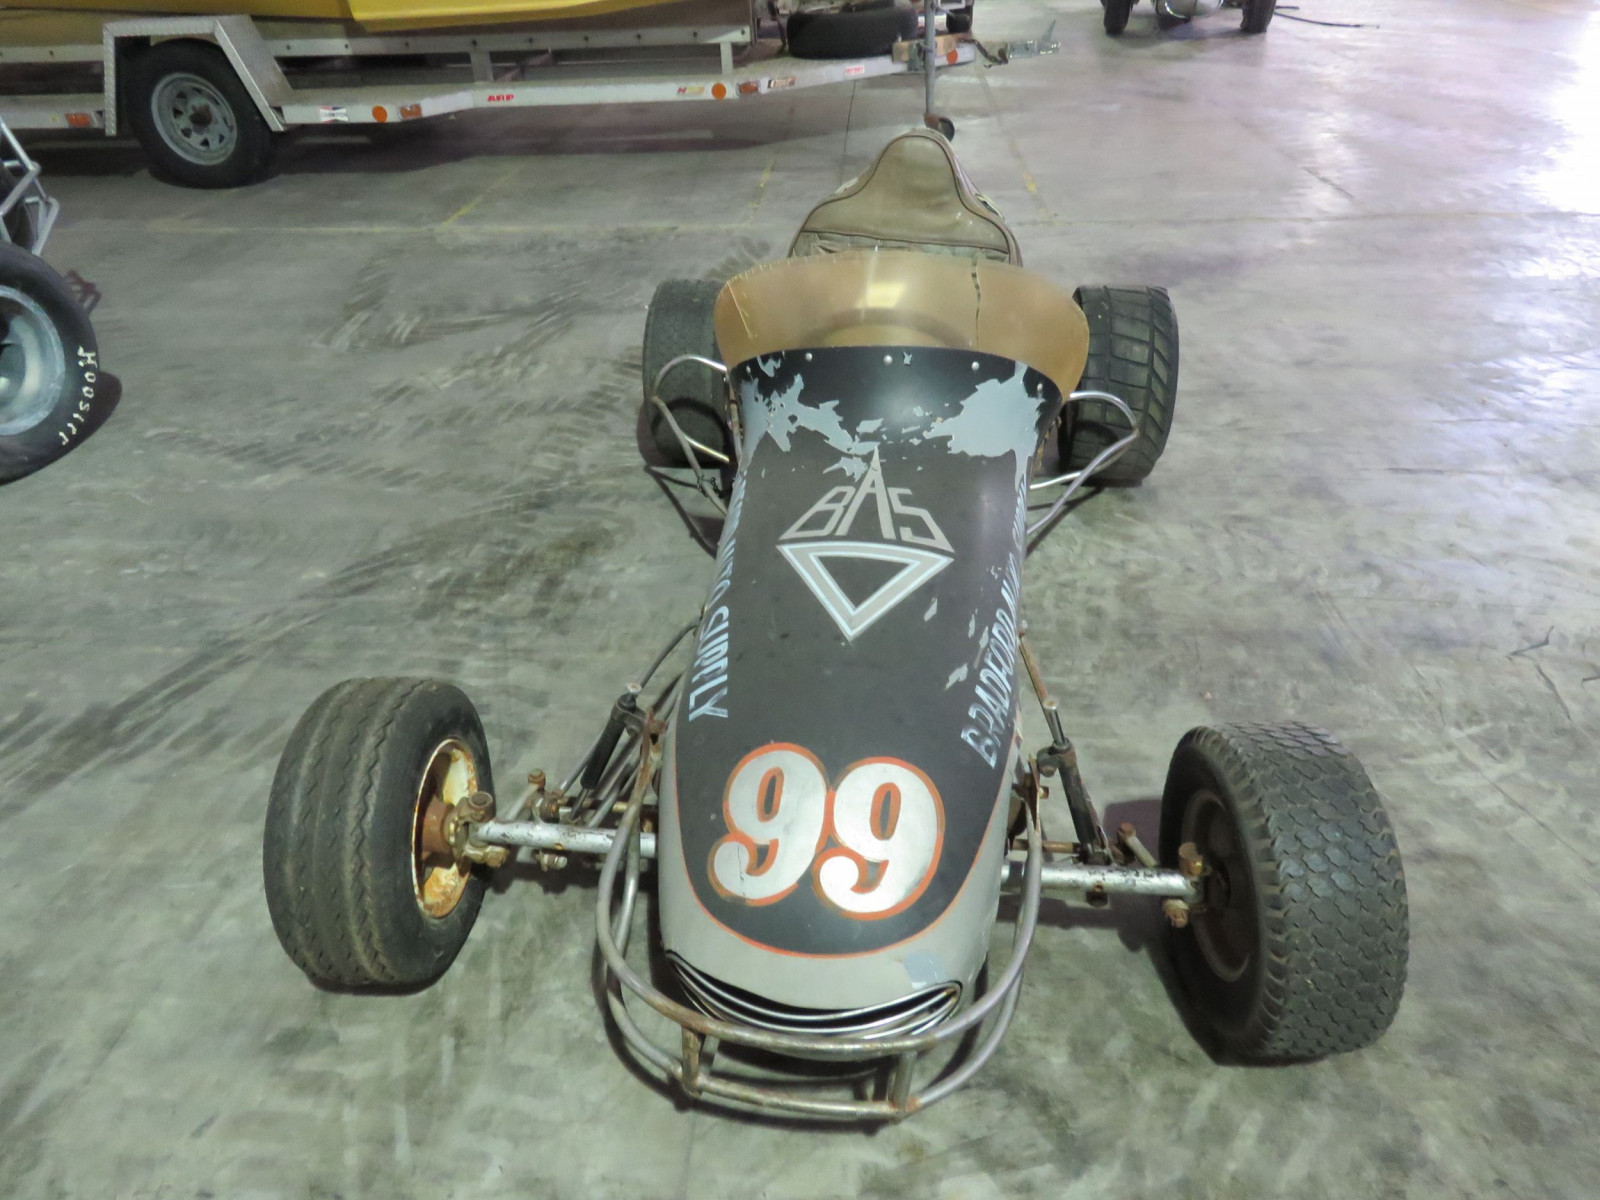 Vintage  1/2 scale Midget Sprint Race Car - Image 3